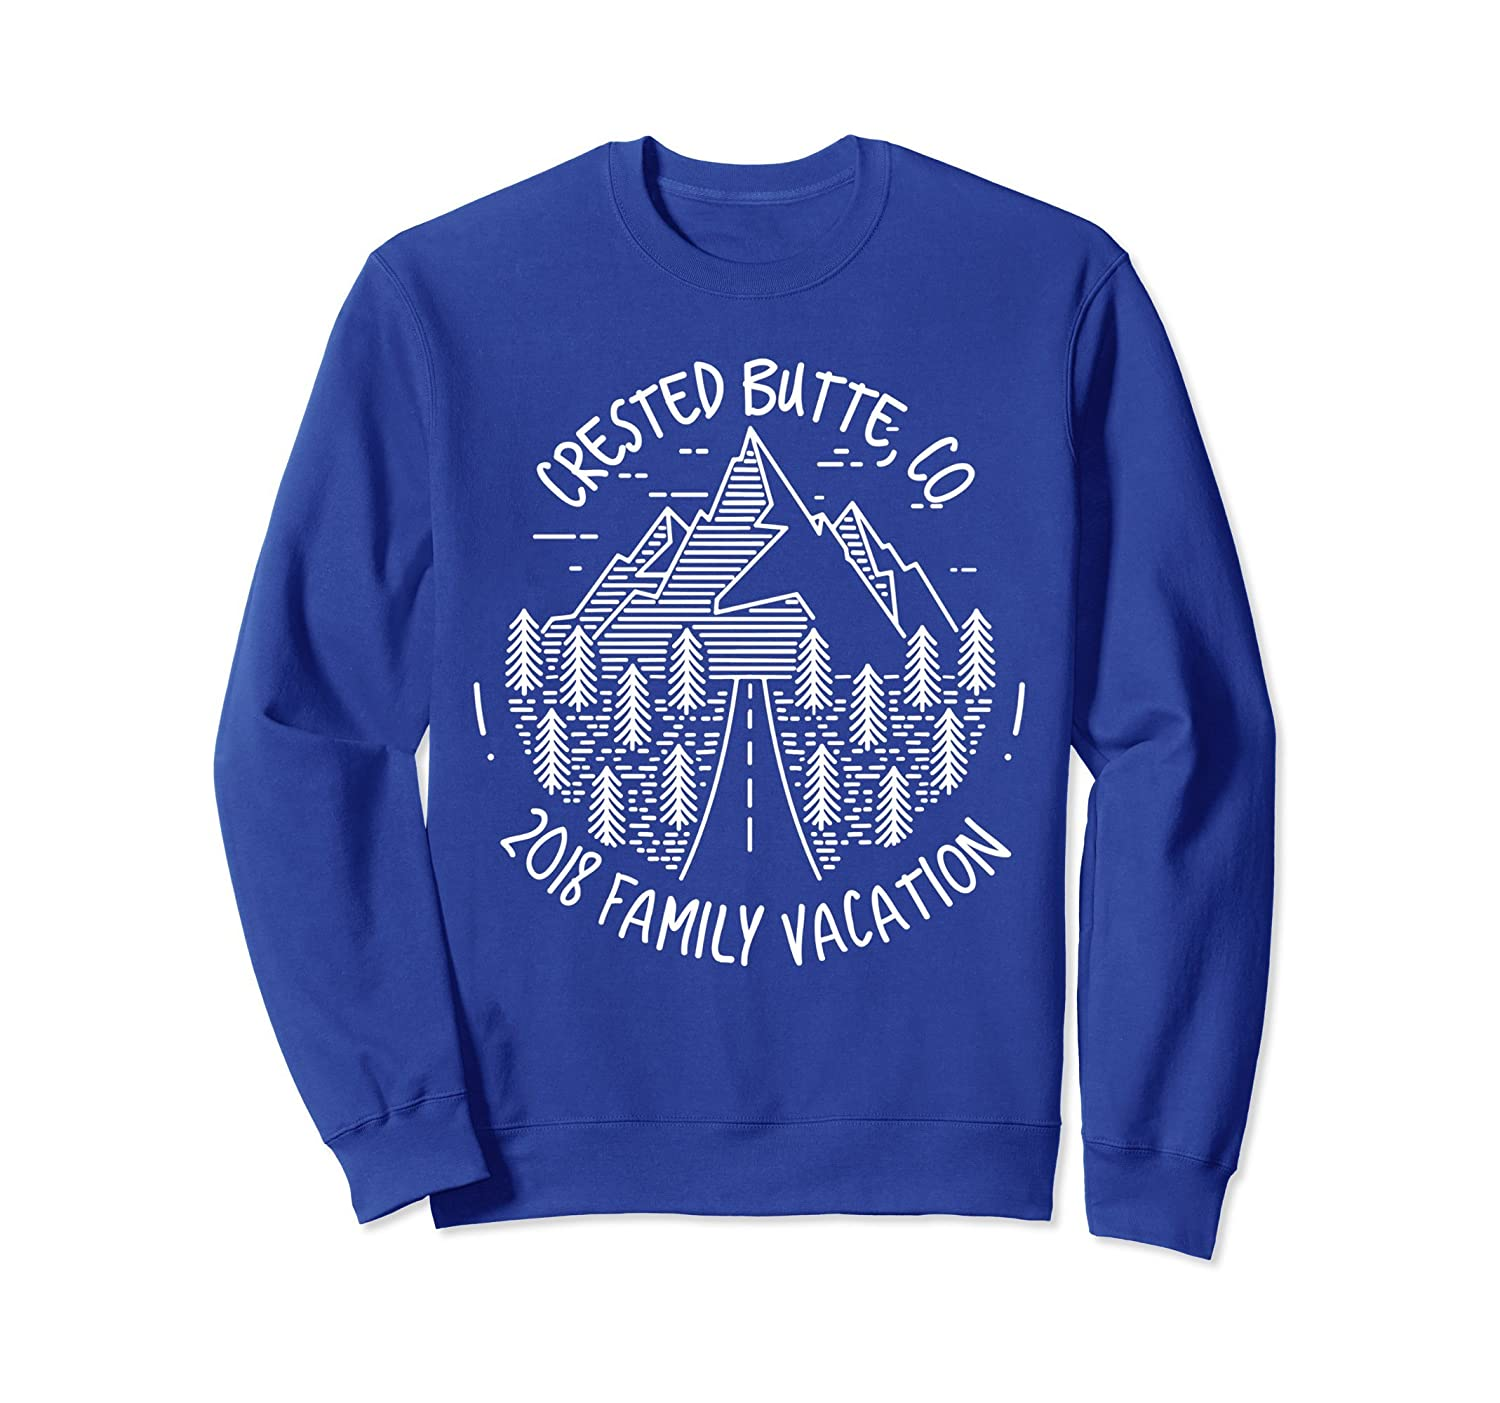 2018 Family Vacation Crested Butte Colorado Sweatshirt-TH